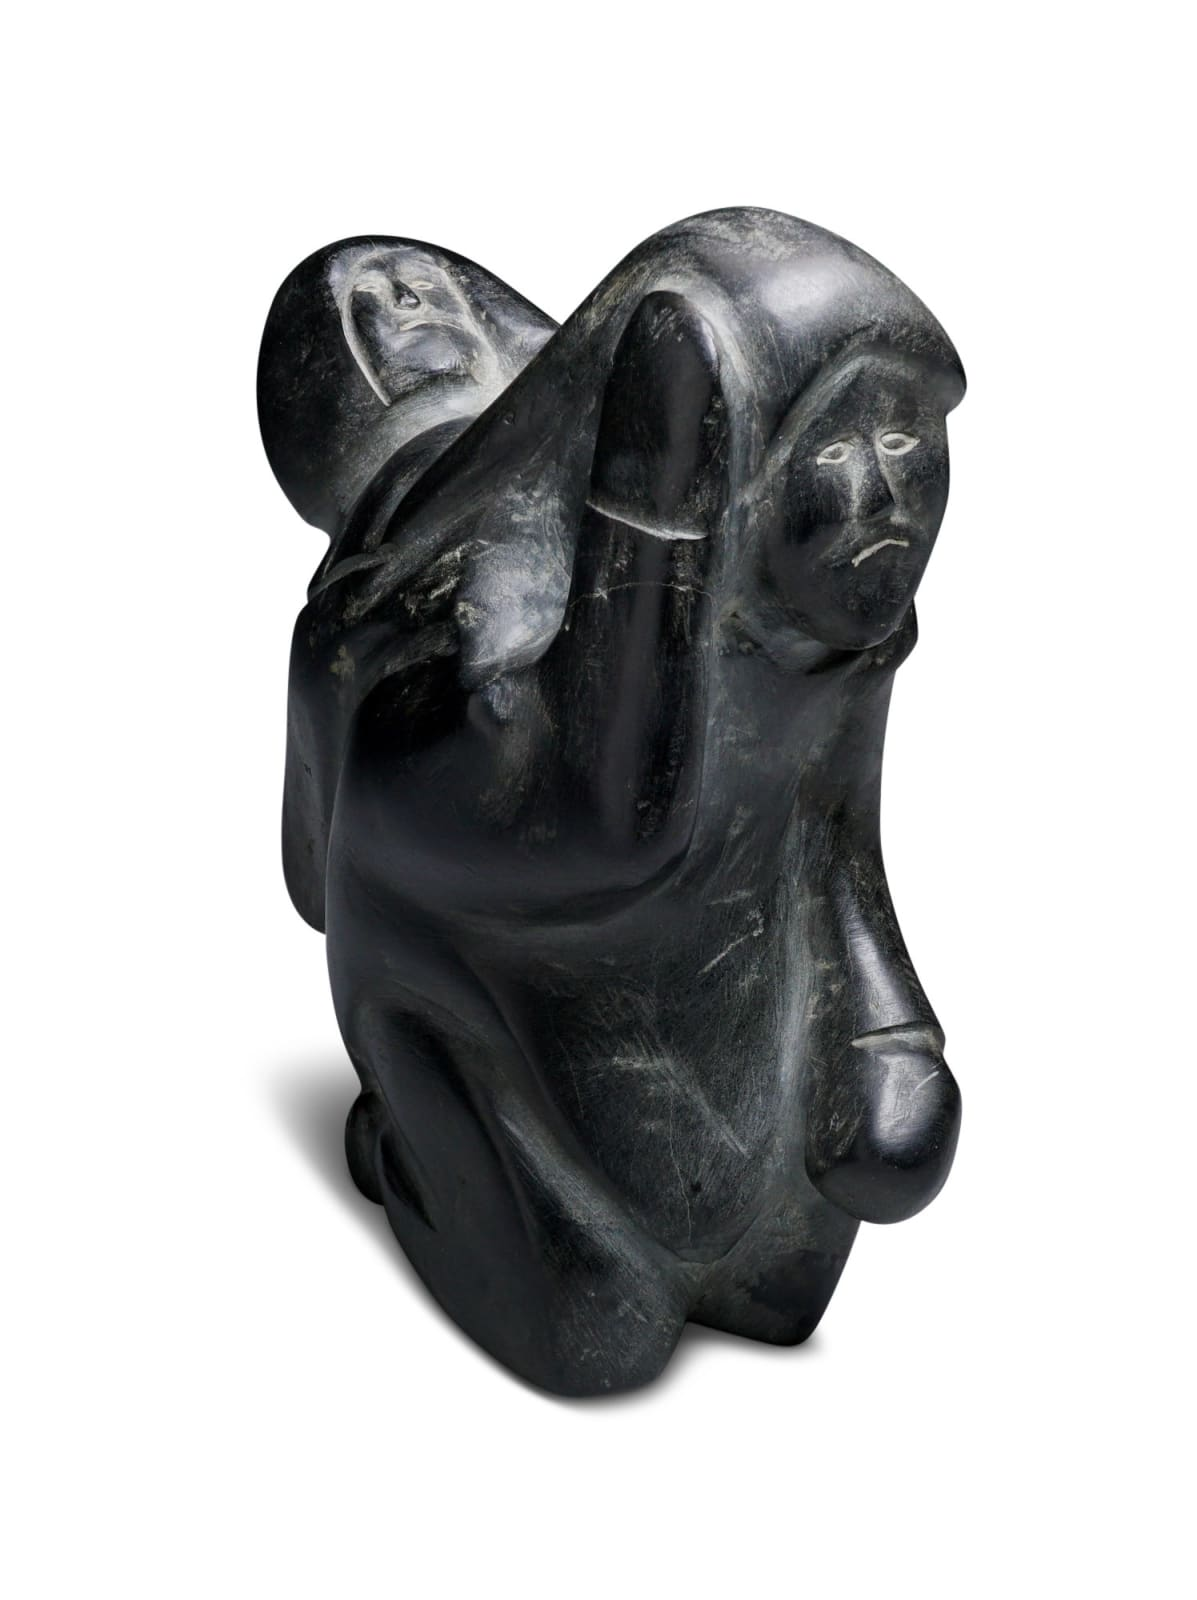 LOT 25 JACOB IRKOK (1937-2009) ARVIAT (ESKIMO POINT) Woeful Mother and Child, 1970 stone, 6 1/2 x 5 x 2 1/2 in (16.5 x 12.7 x 6.3 cm) ESTIMATE: $400 — $600